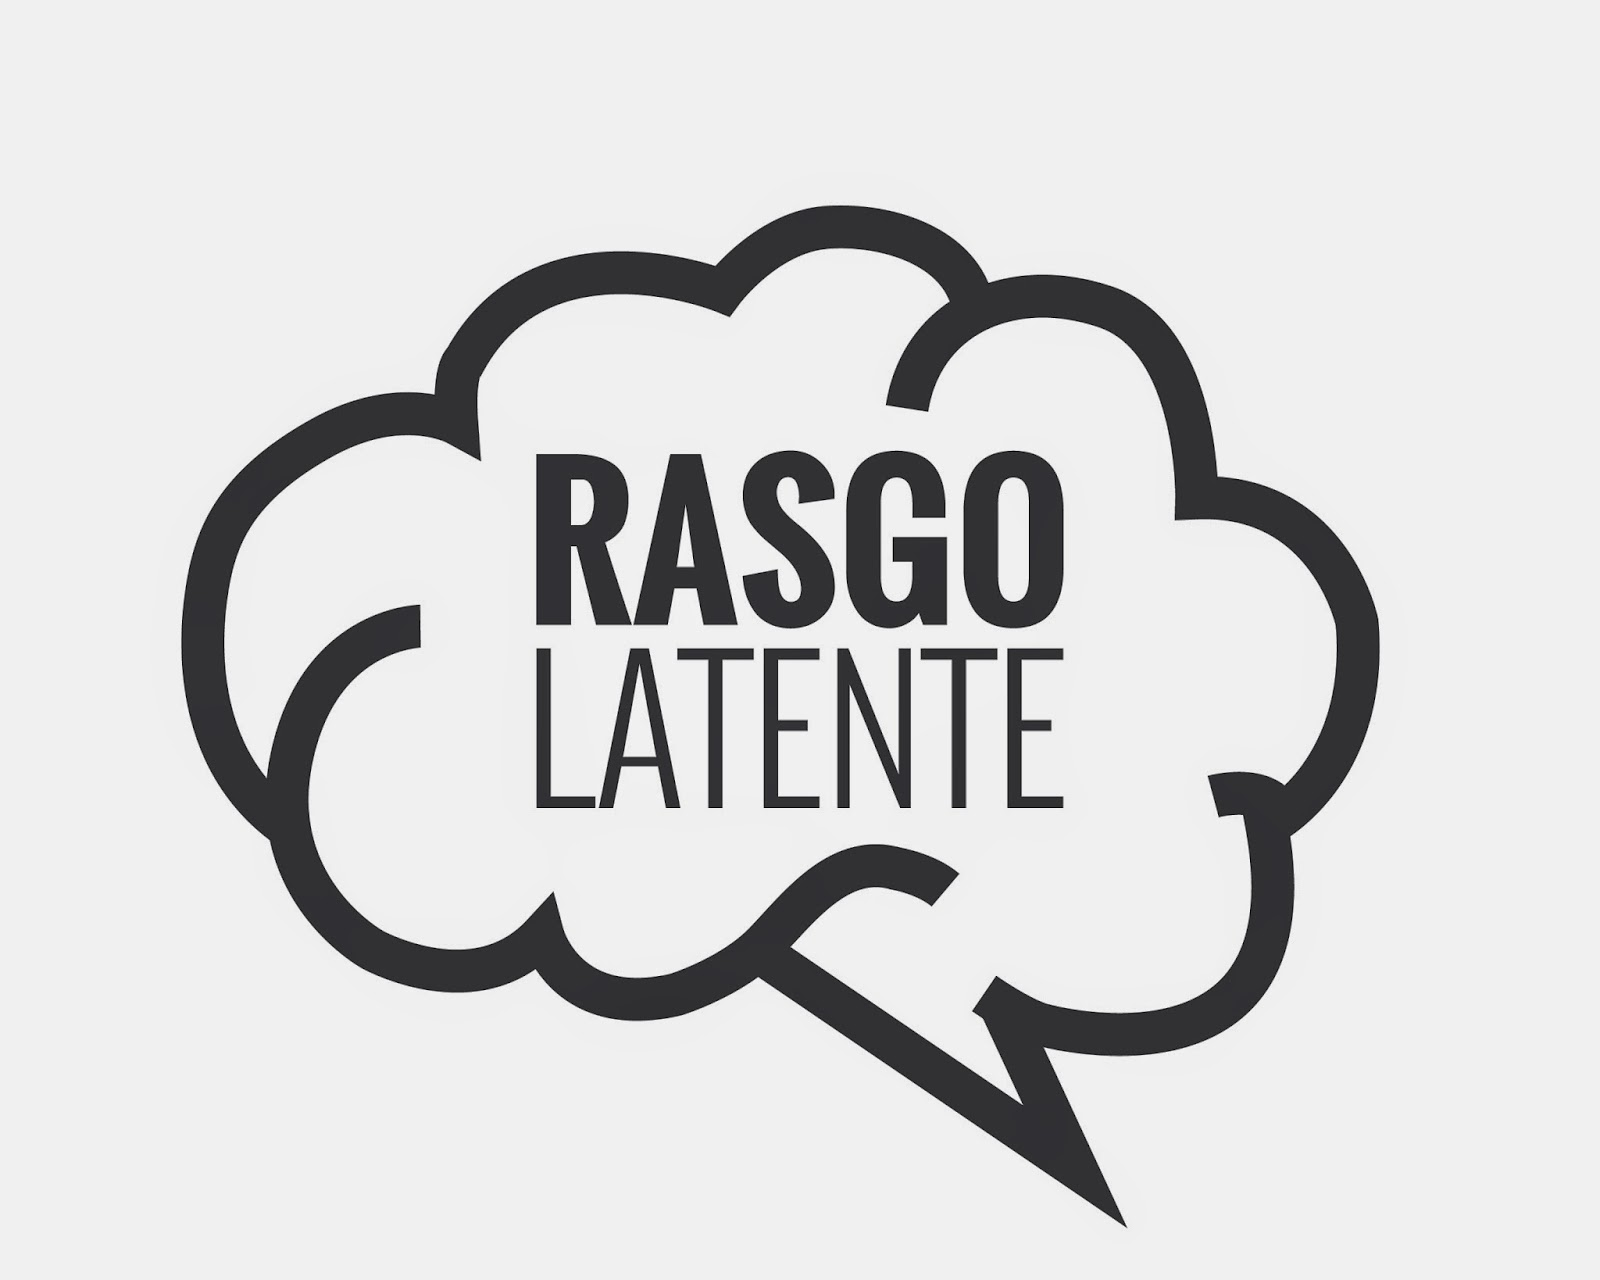 Rasgo Latente